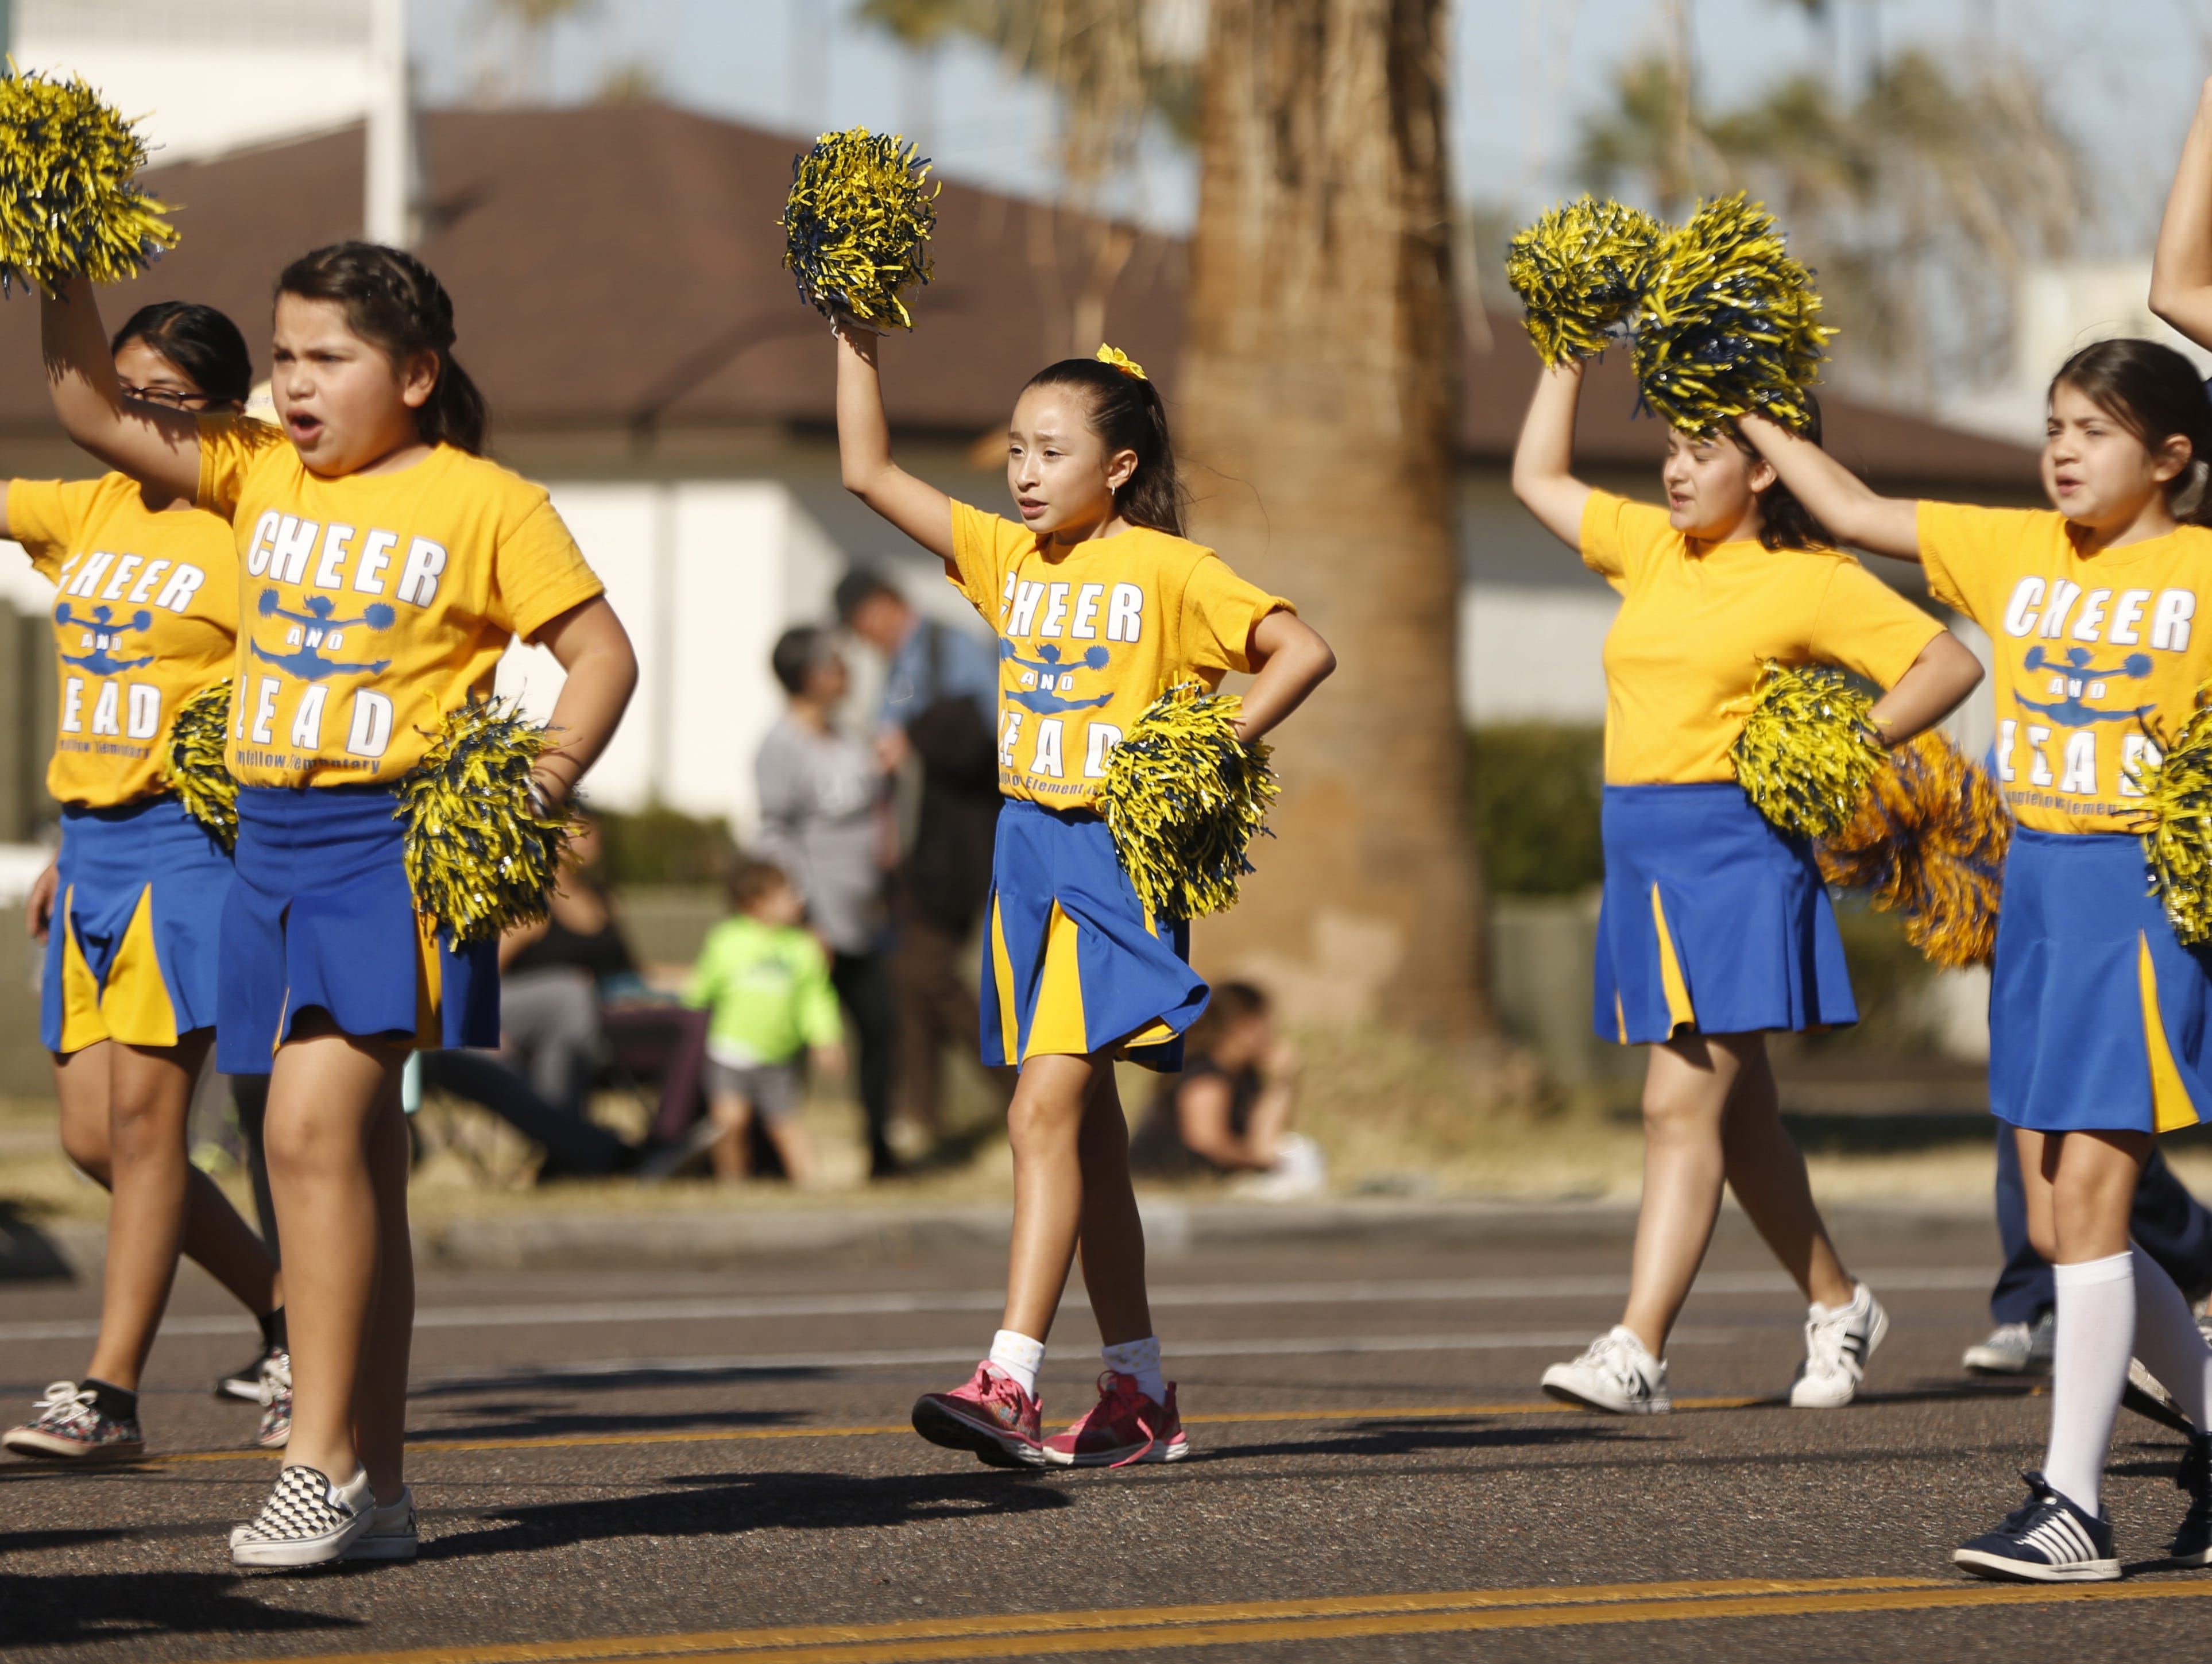 Longfellow Elementary dances down the parade route during the MLK Day Parade in Mesa, Ariz. on January 21, 2019.